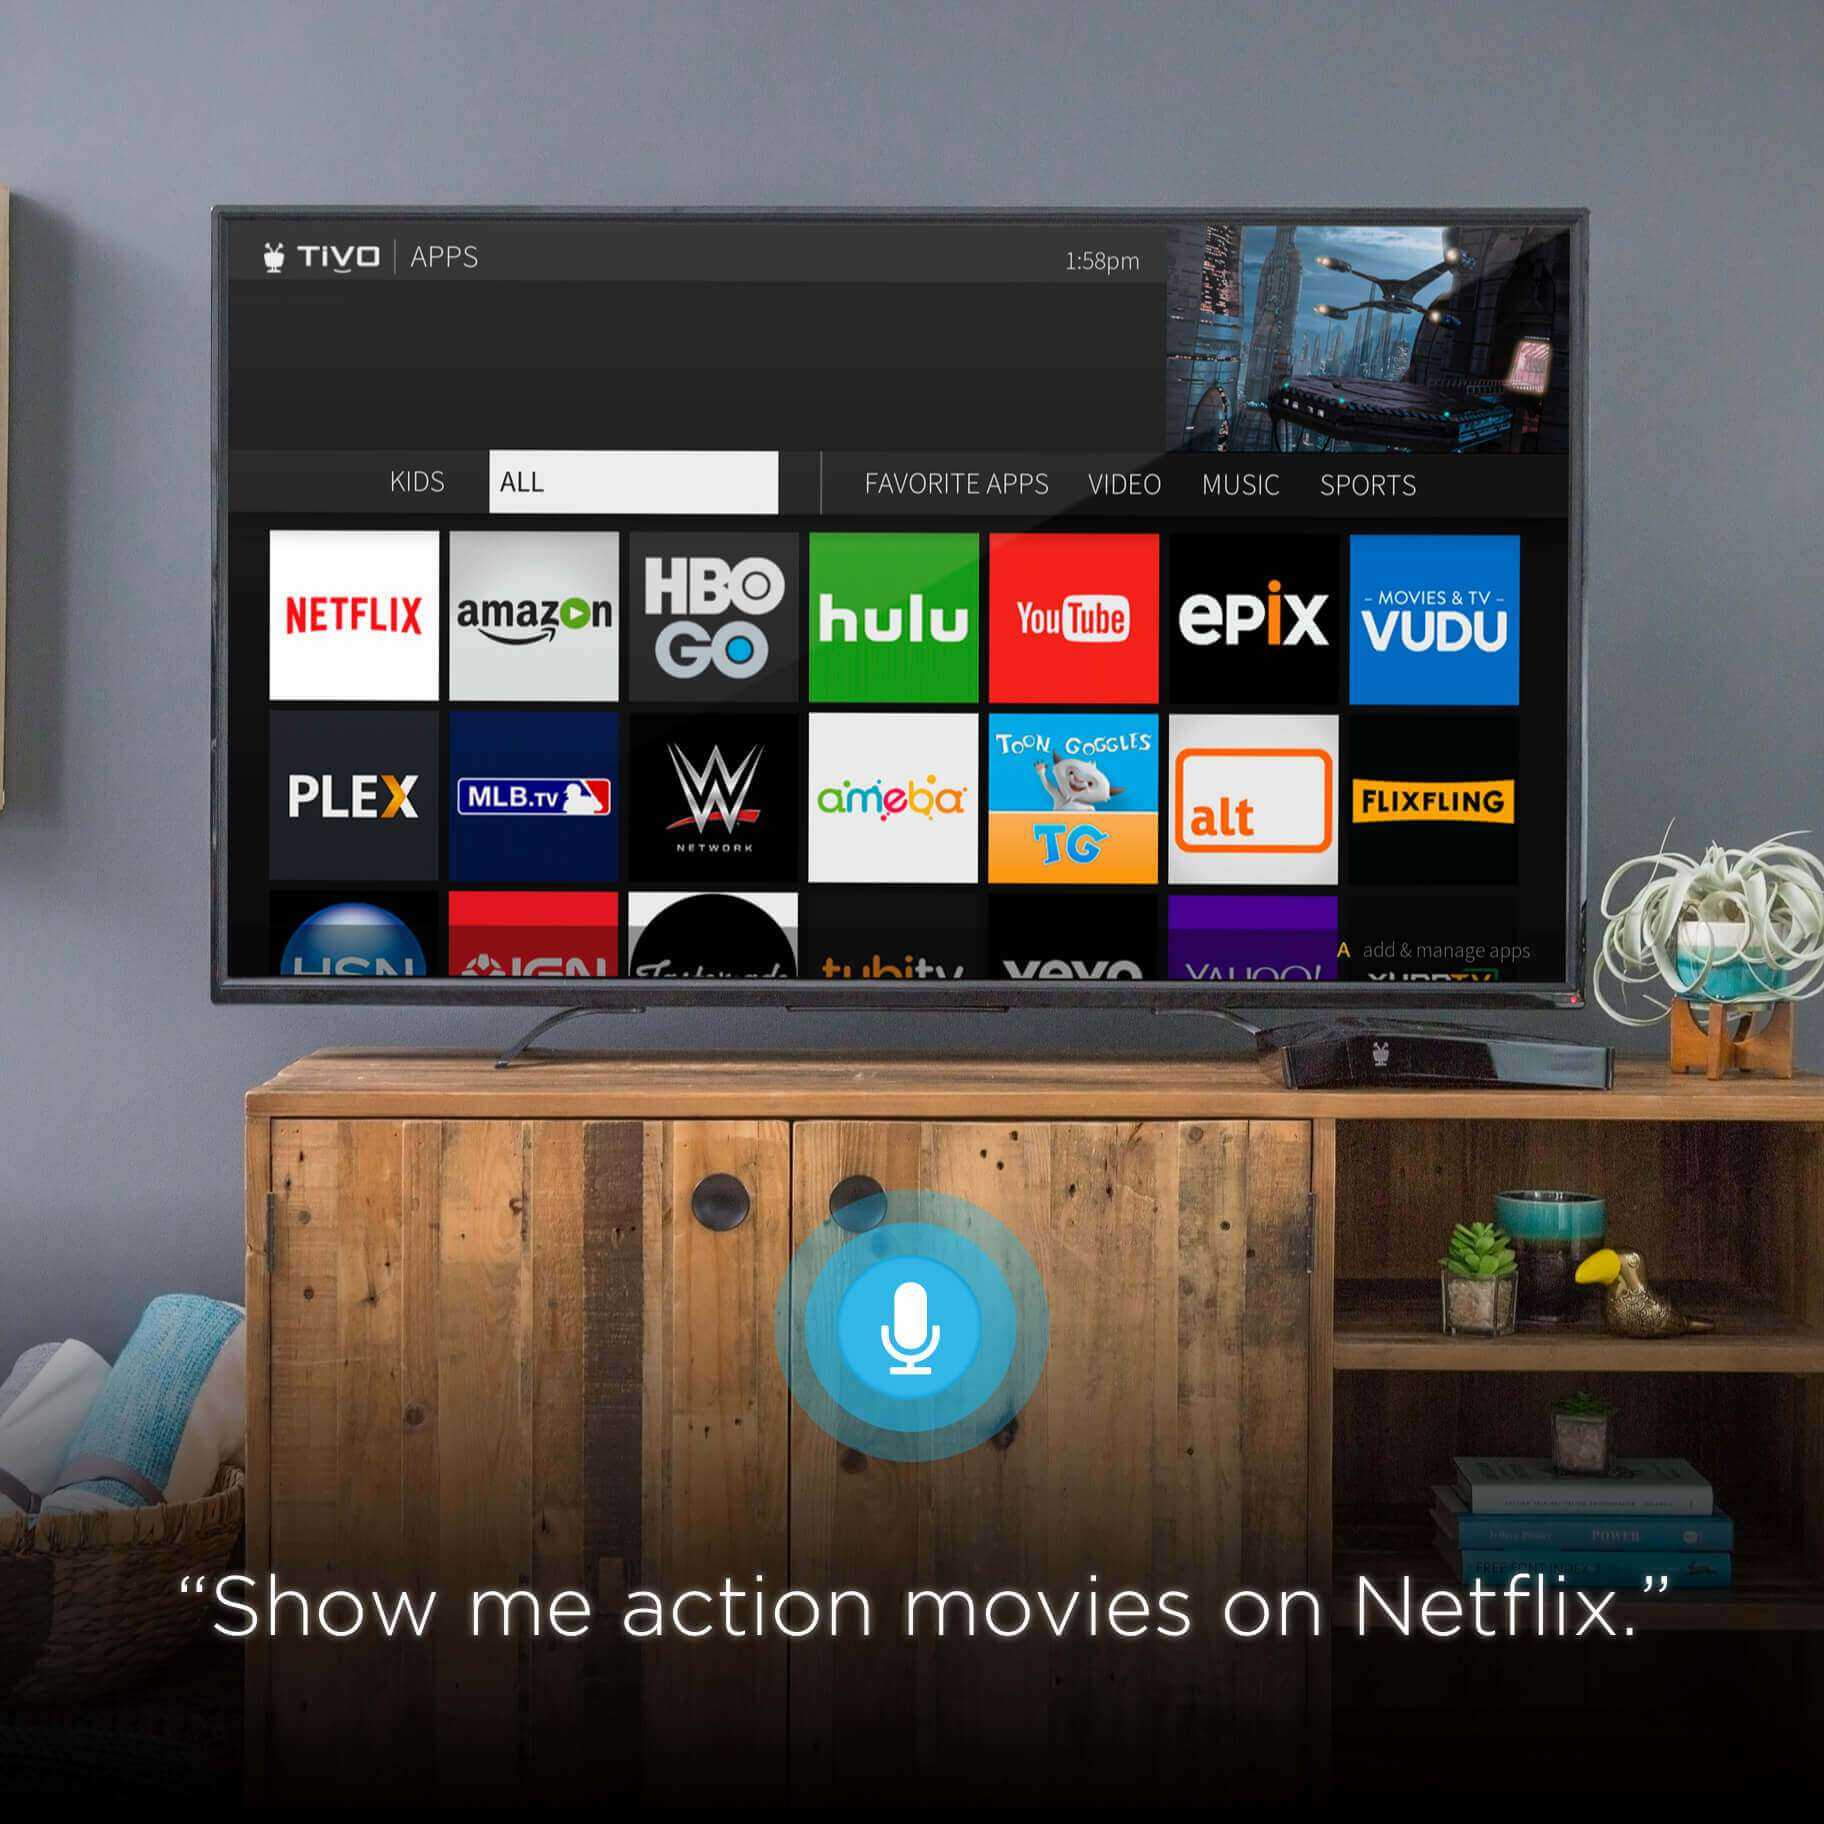 tivo-launch-apps